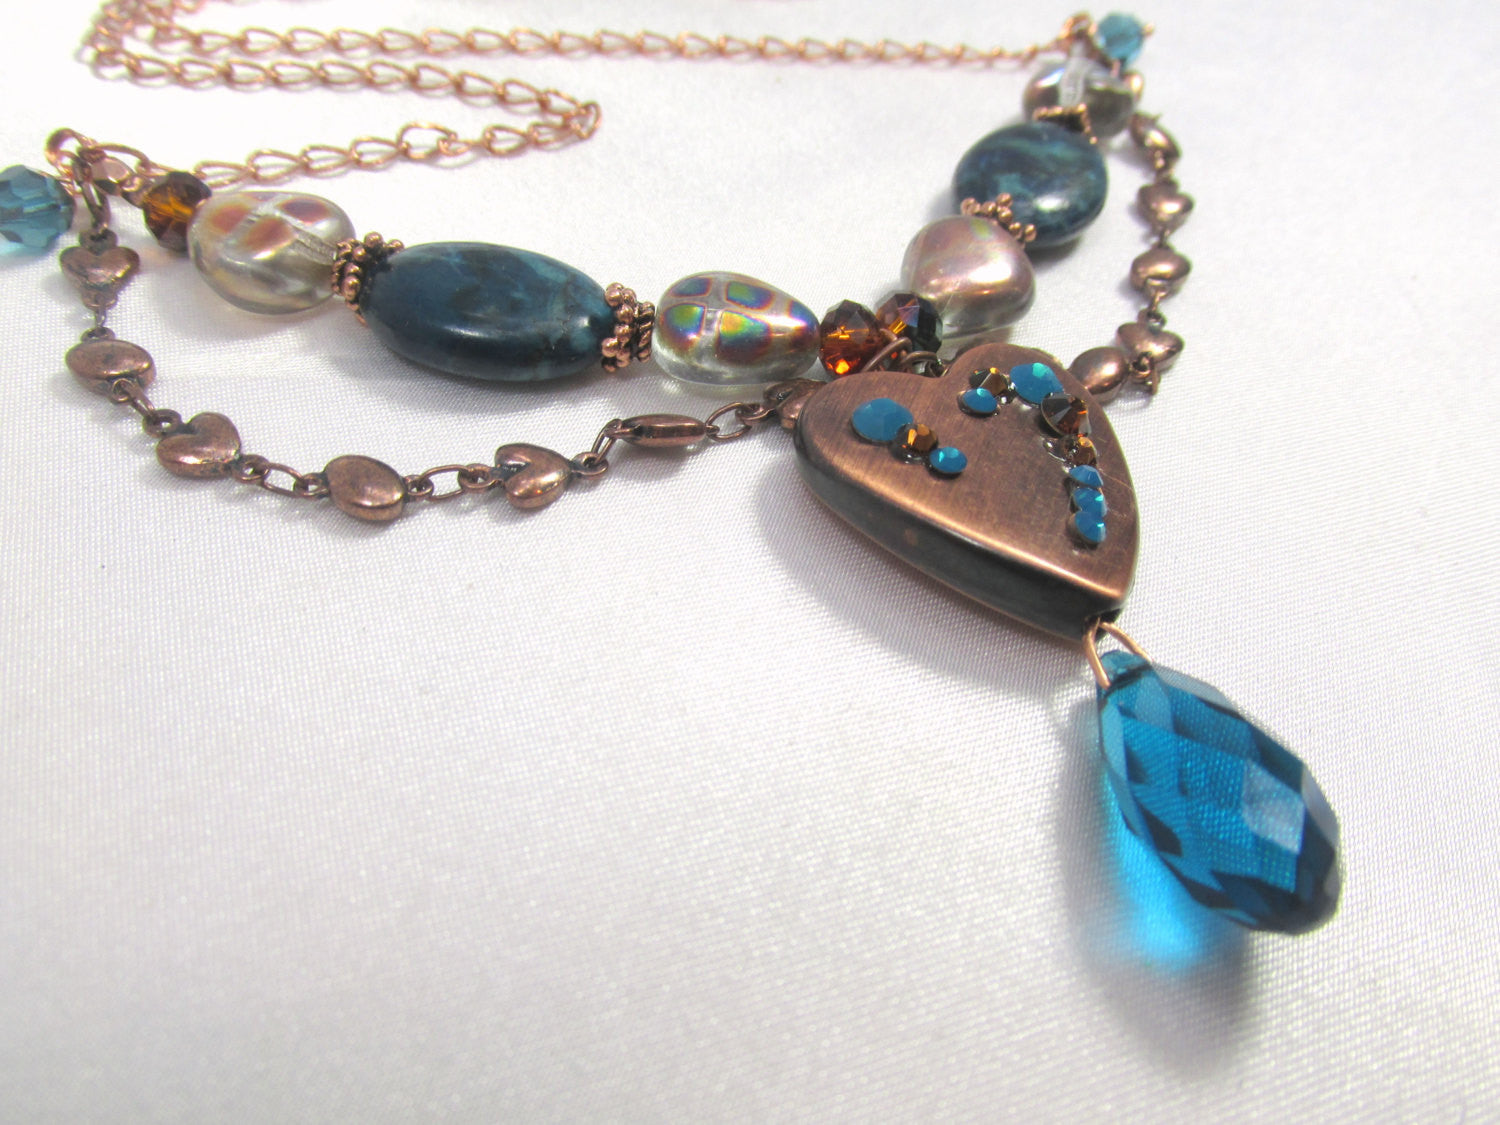 Copper Heart and Blue Teal Turquoise Crystal and Agate Necklace - Odyssey Creations